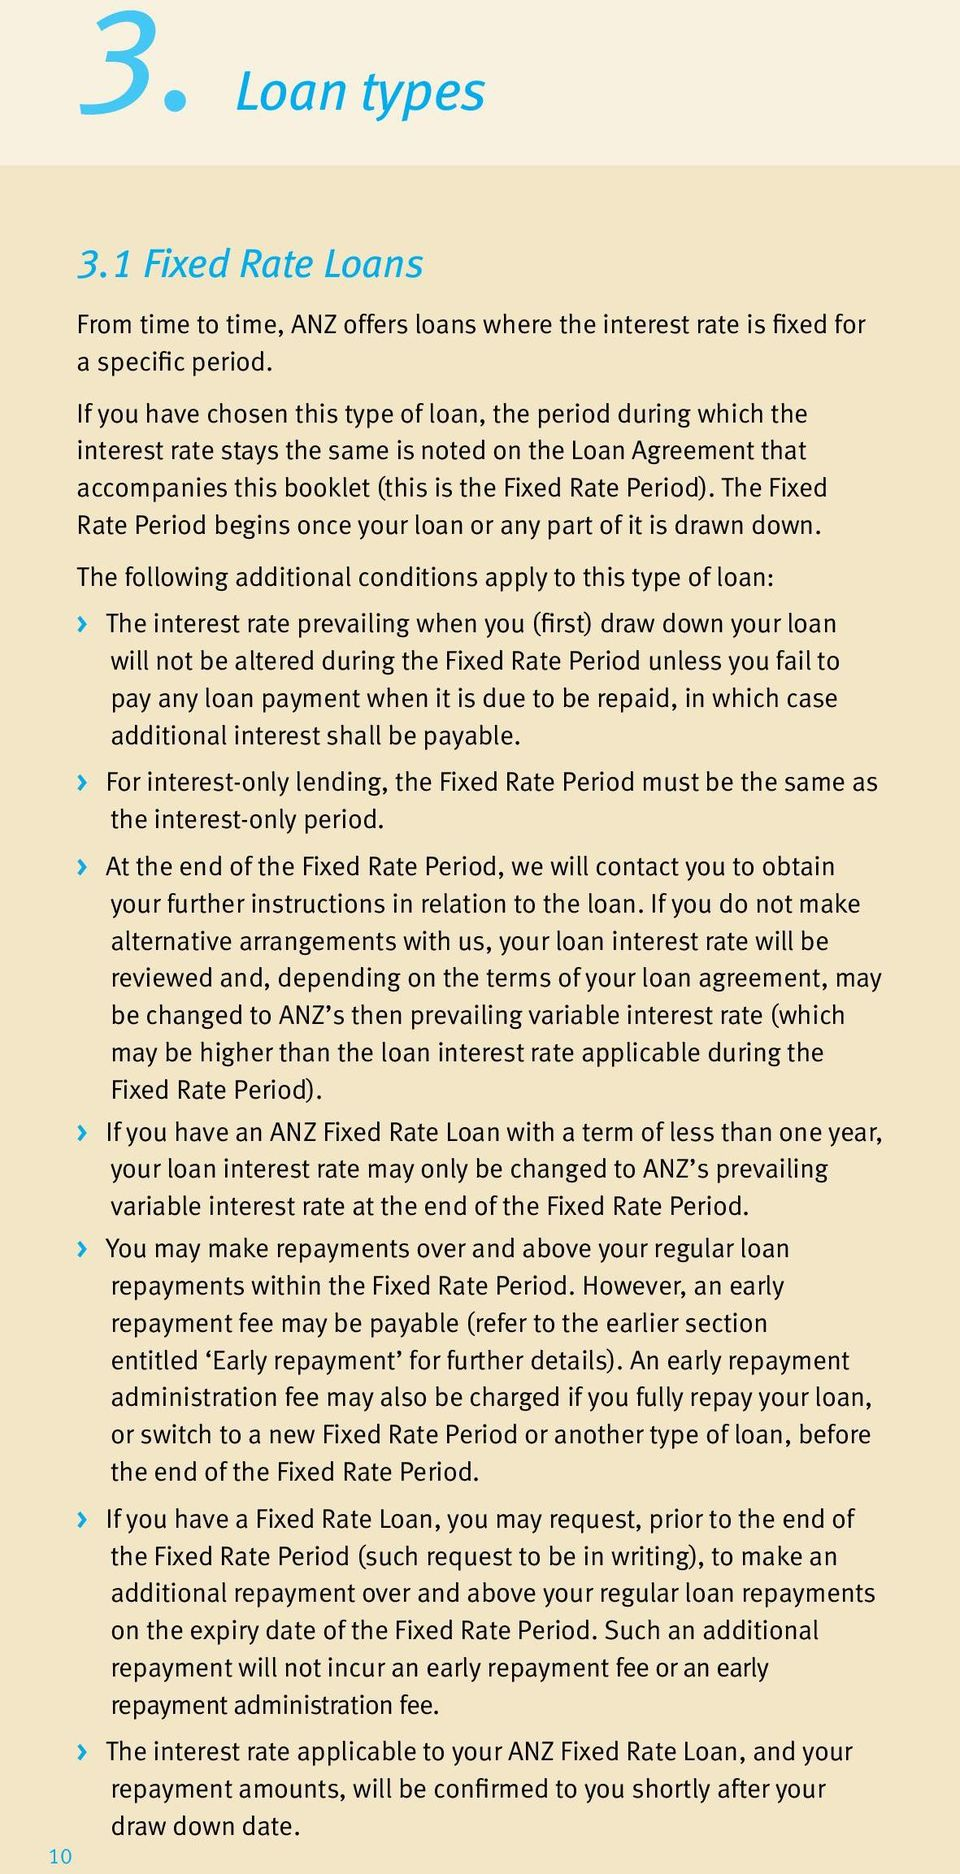 The Fixed Rate Period begins once your loan or any part of it is drawn down.